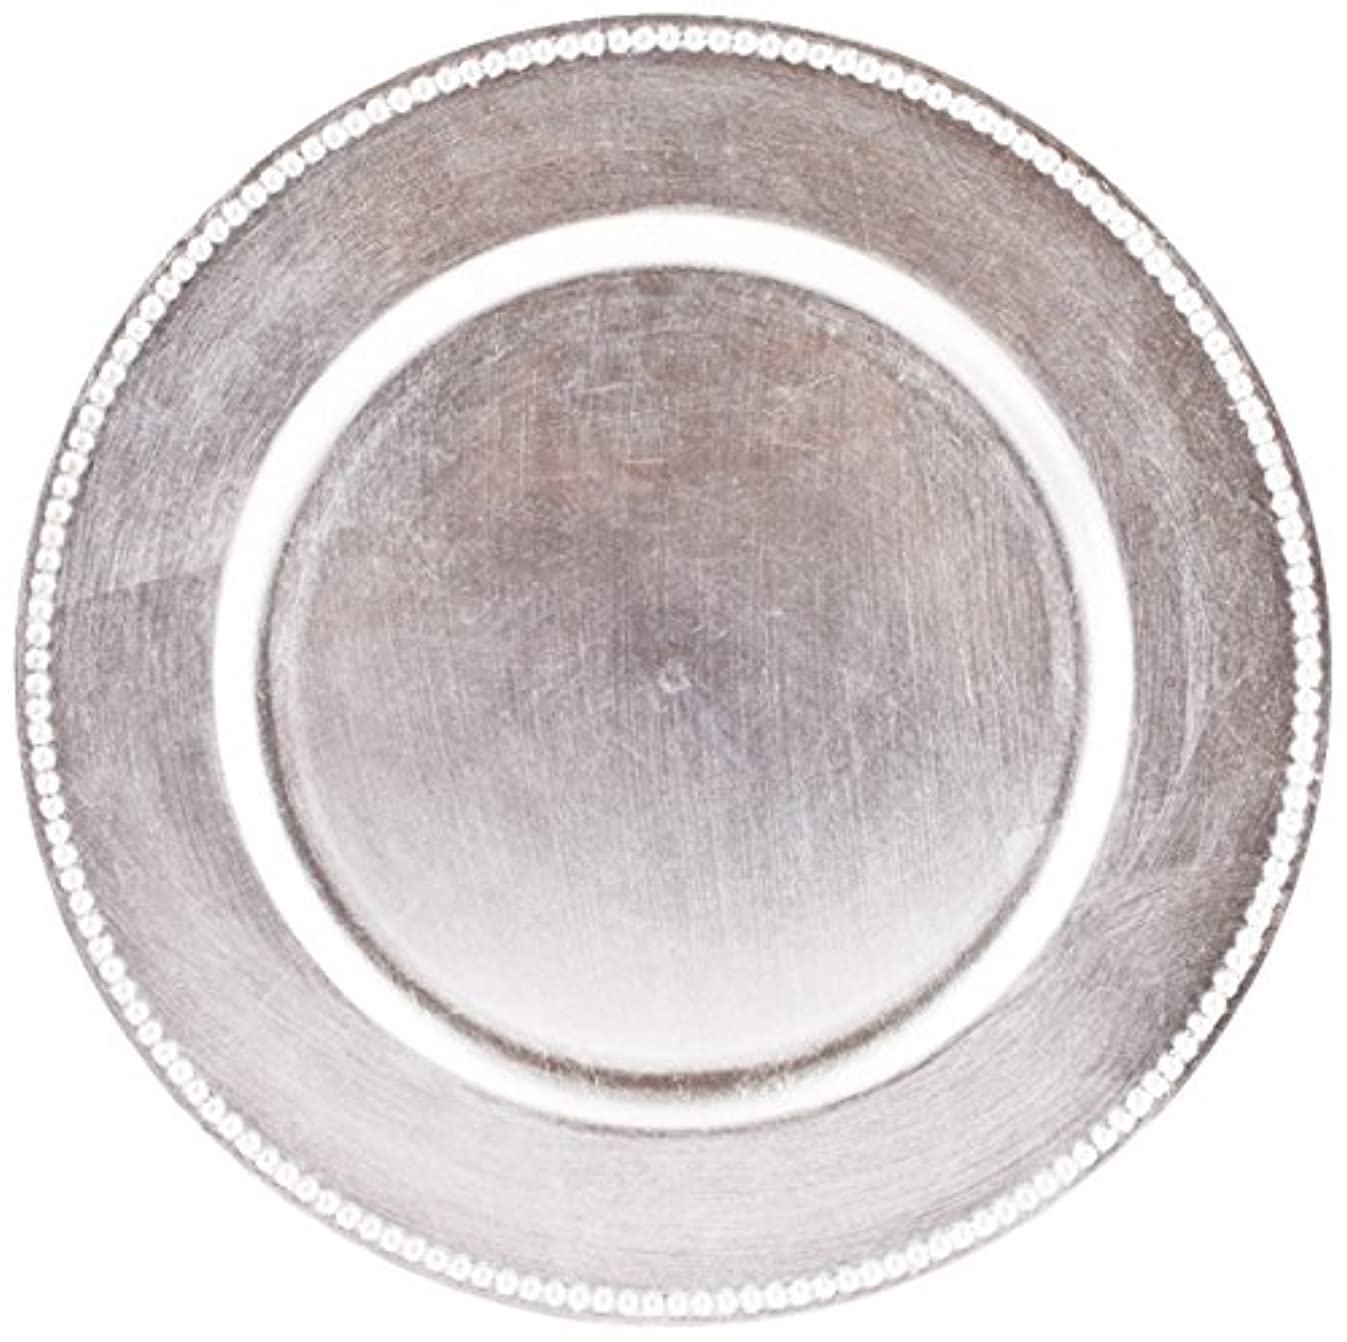 Koyal Wholesale 424467 Beaded 4 pack Charger Plates, 13 inch, Silver